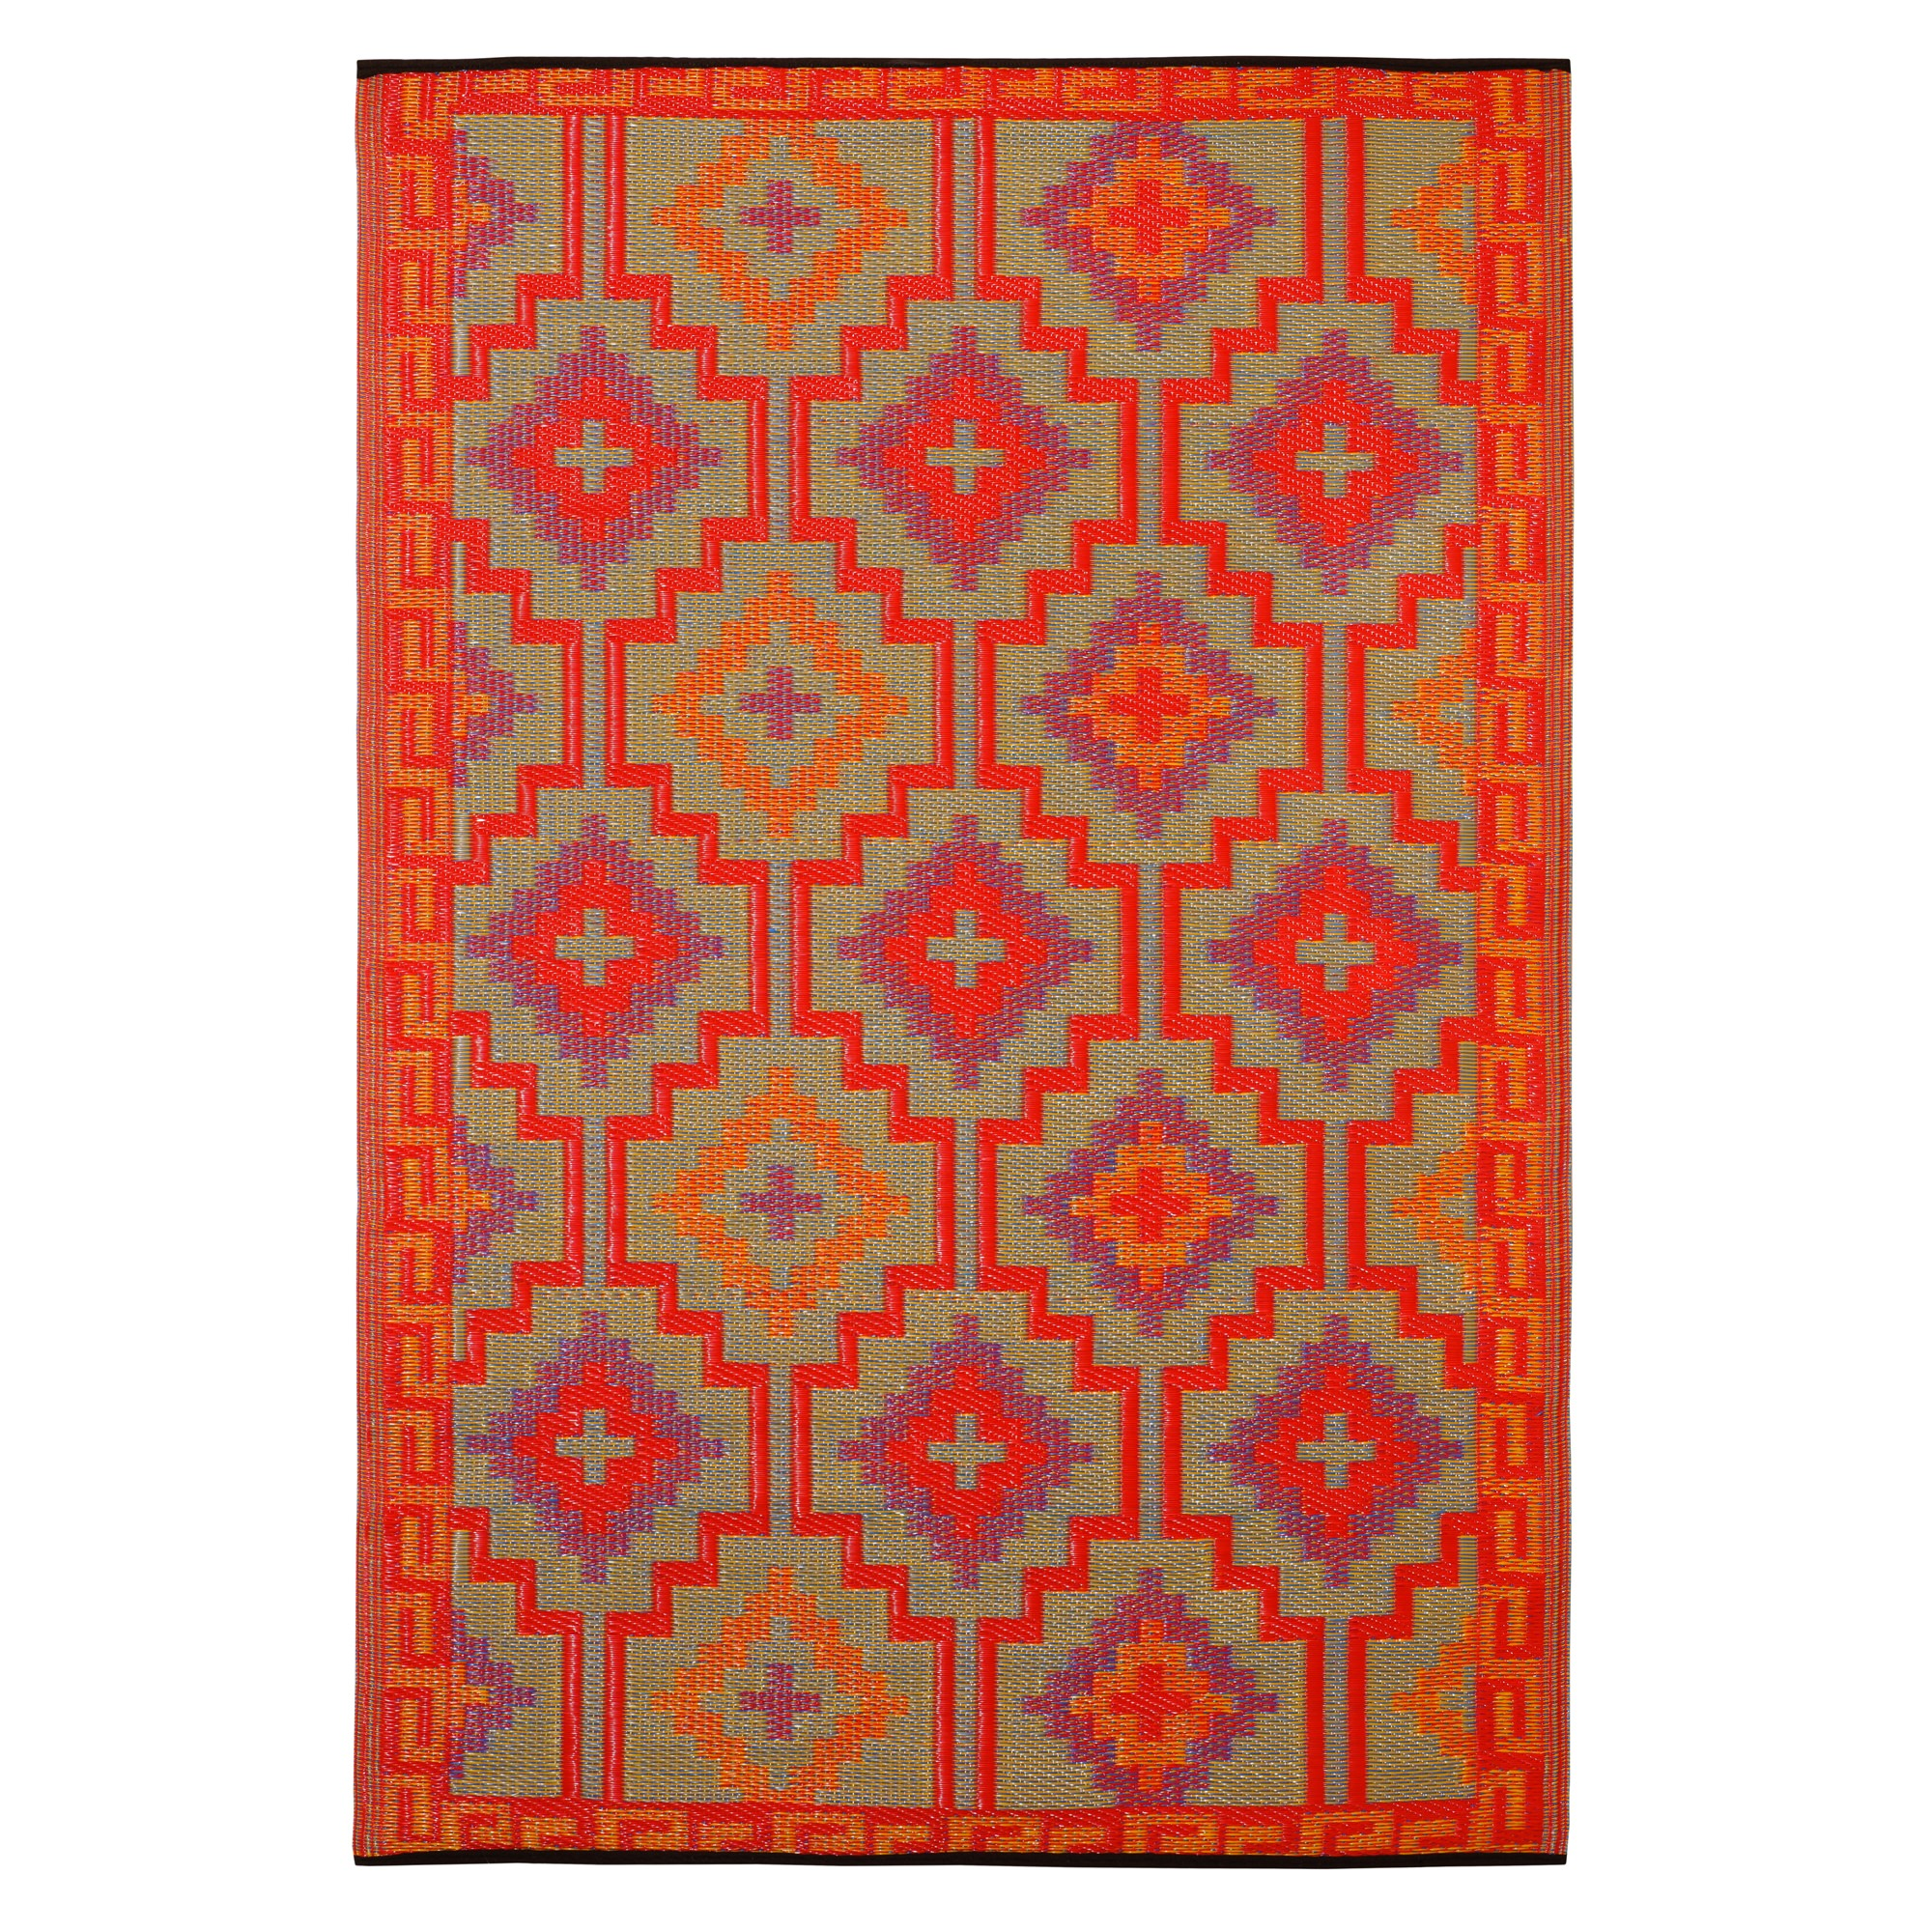 recycled plastic outdoor rugs Lhasa Orange & Violet Outdoor Mat | Fab Habitat | DFOHome recycled plastic outdoor rugs